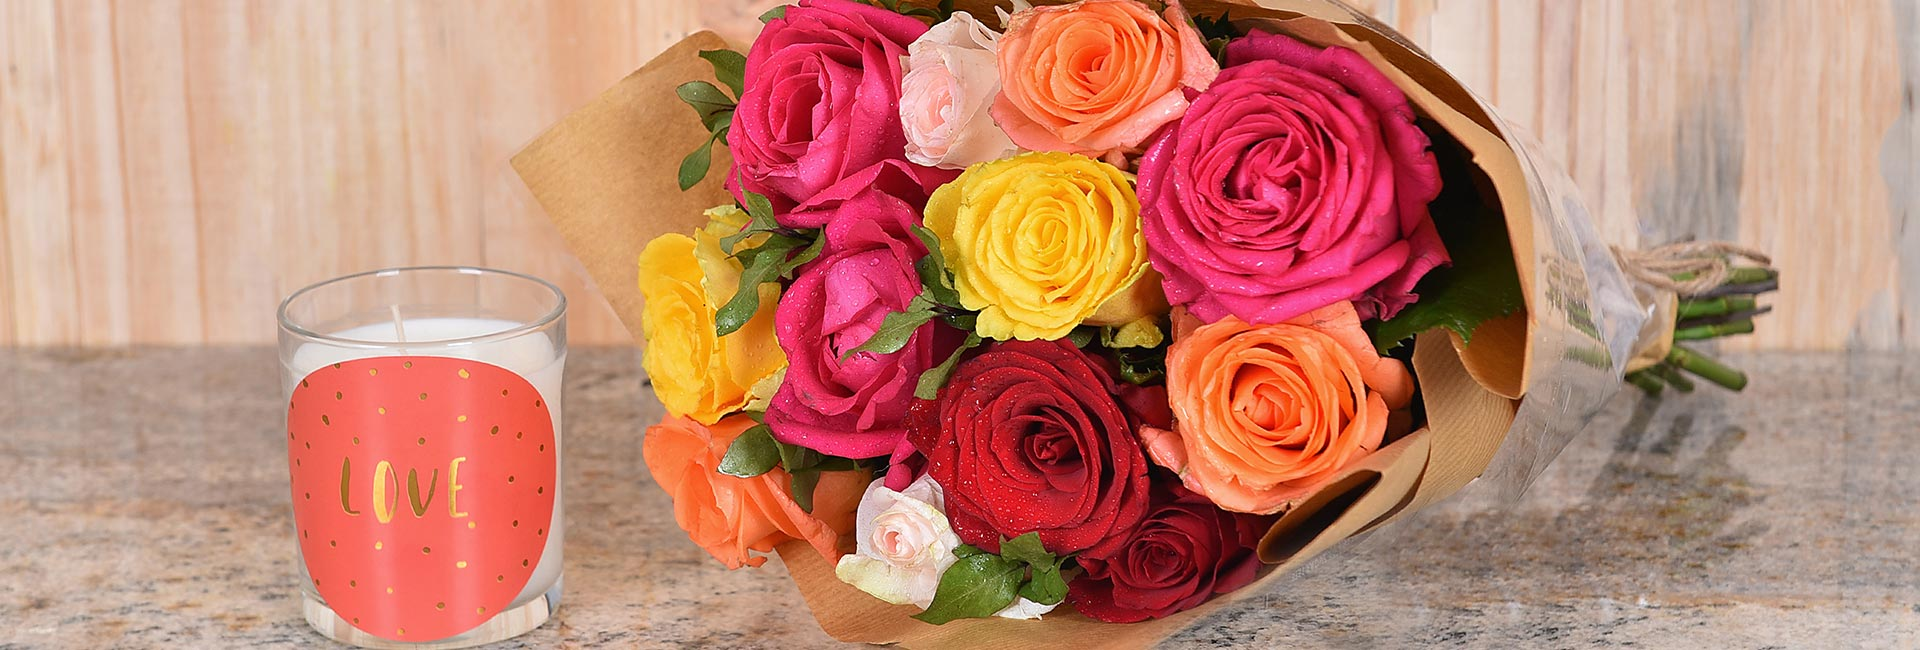 Order Roses Online Today In Gauteng | Hamper World